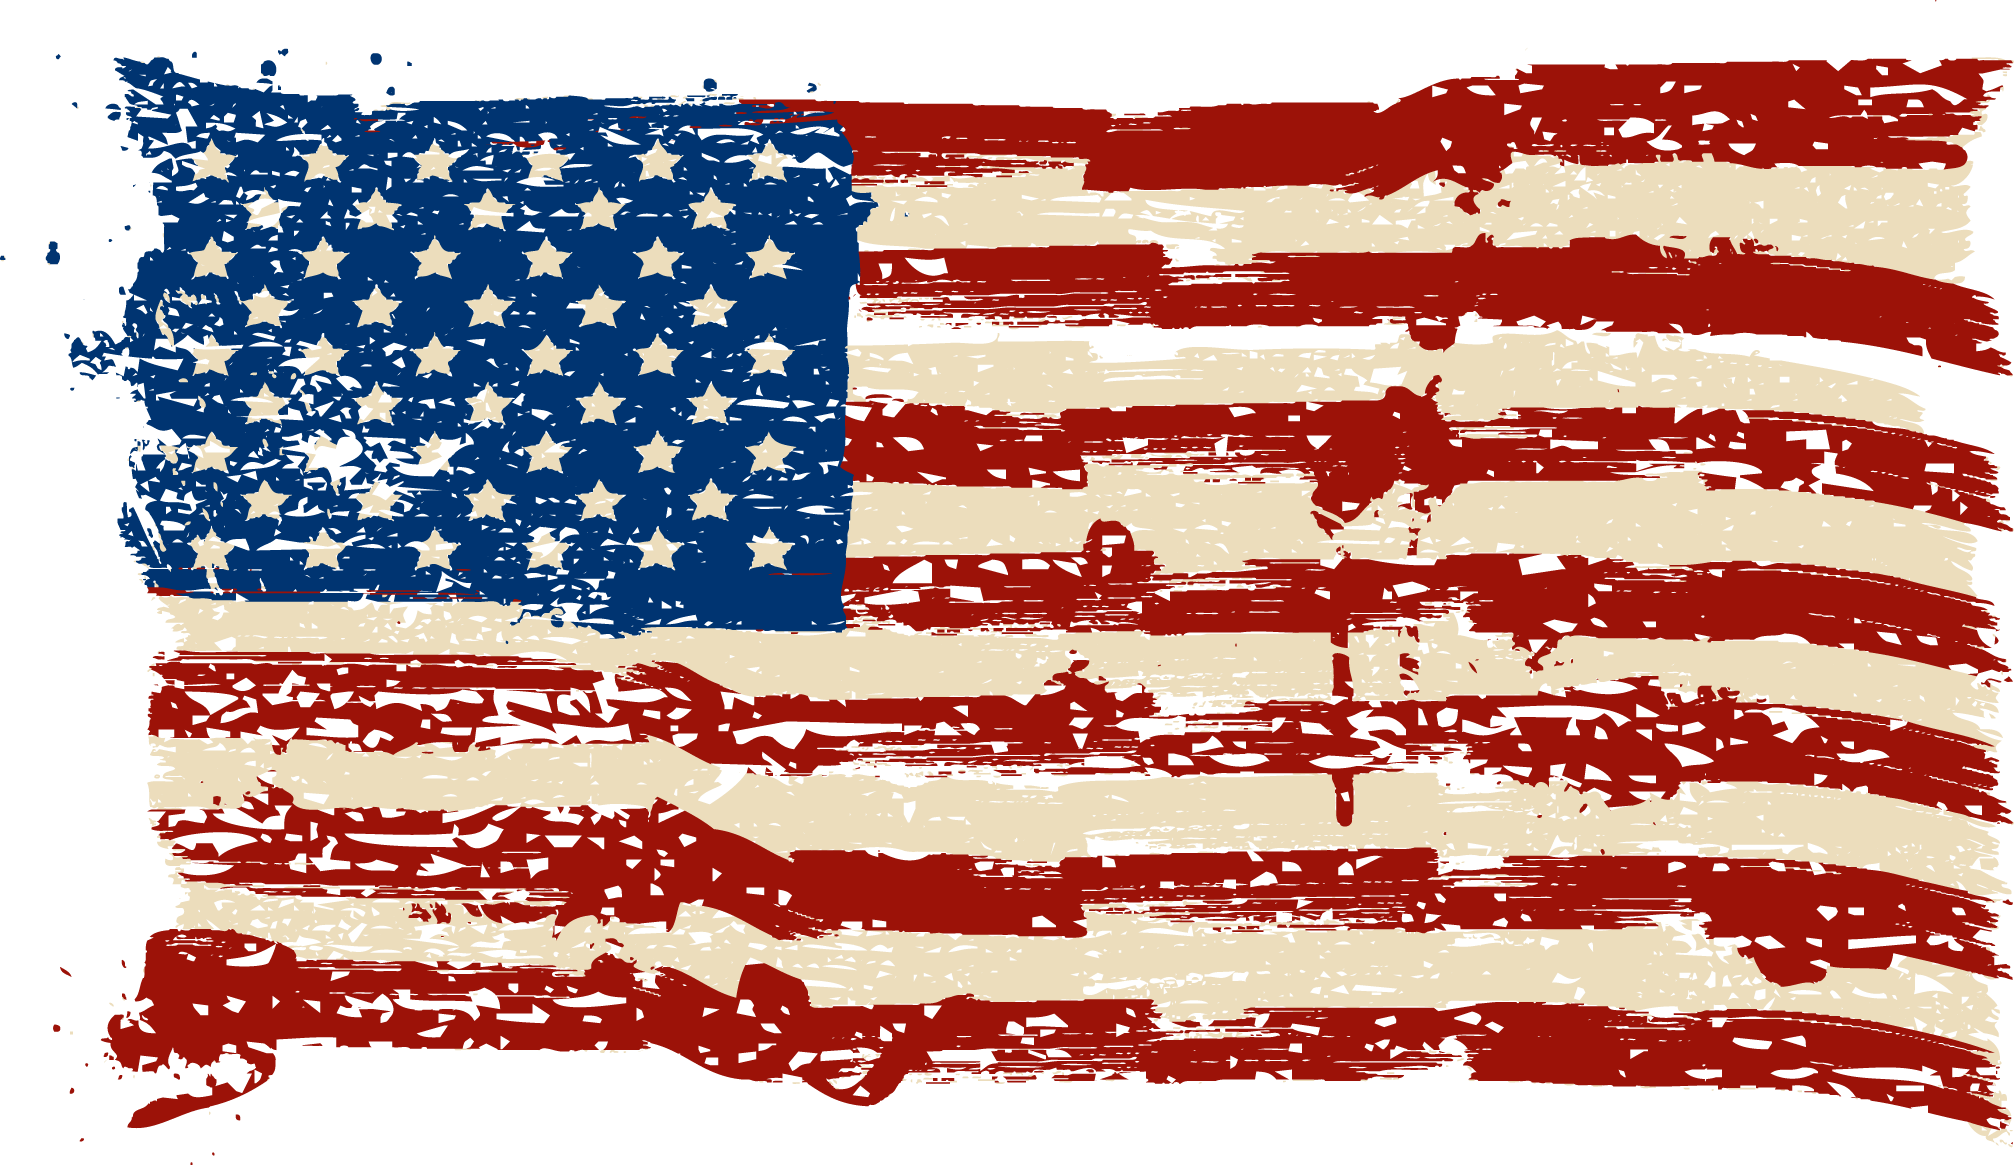 United states of america flag png. Transparent images all picture